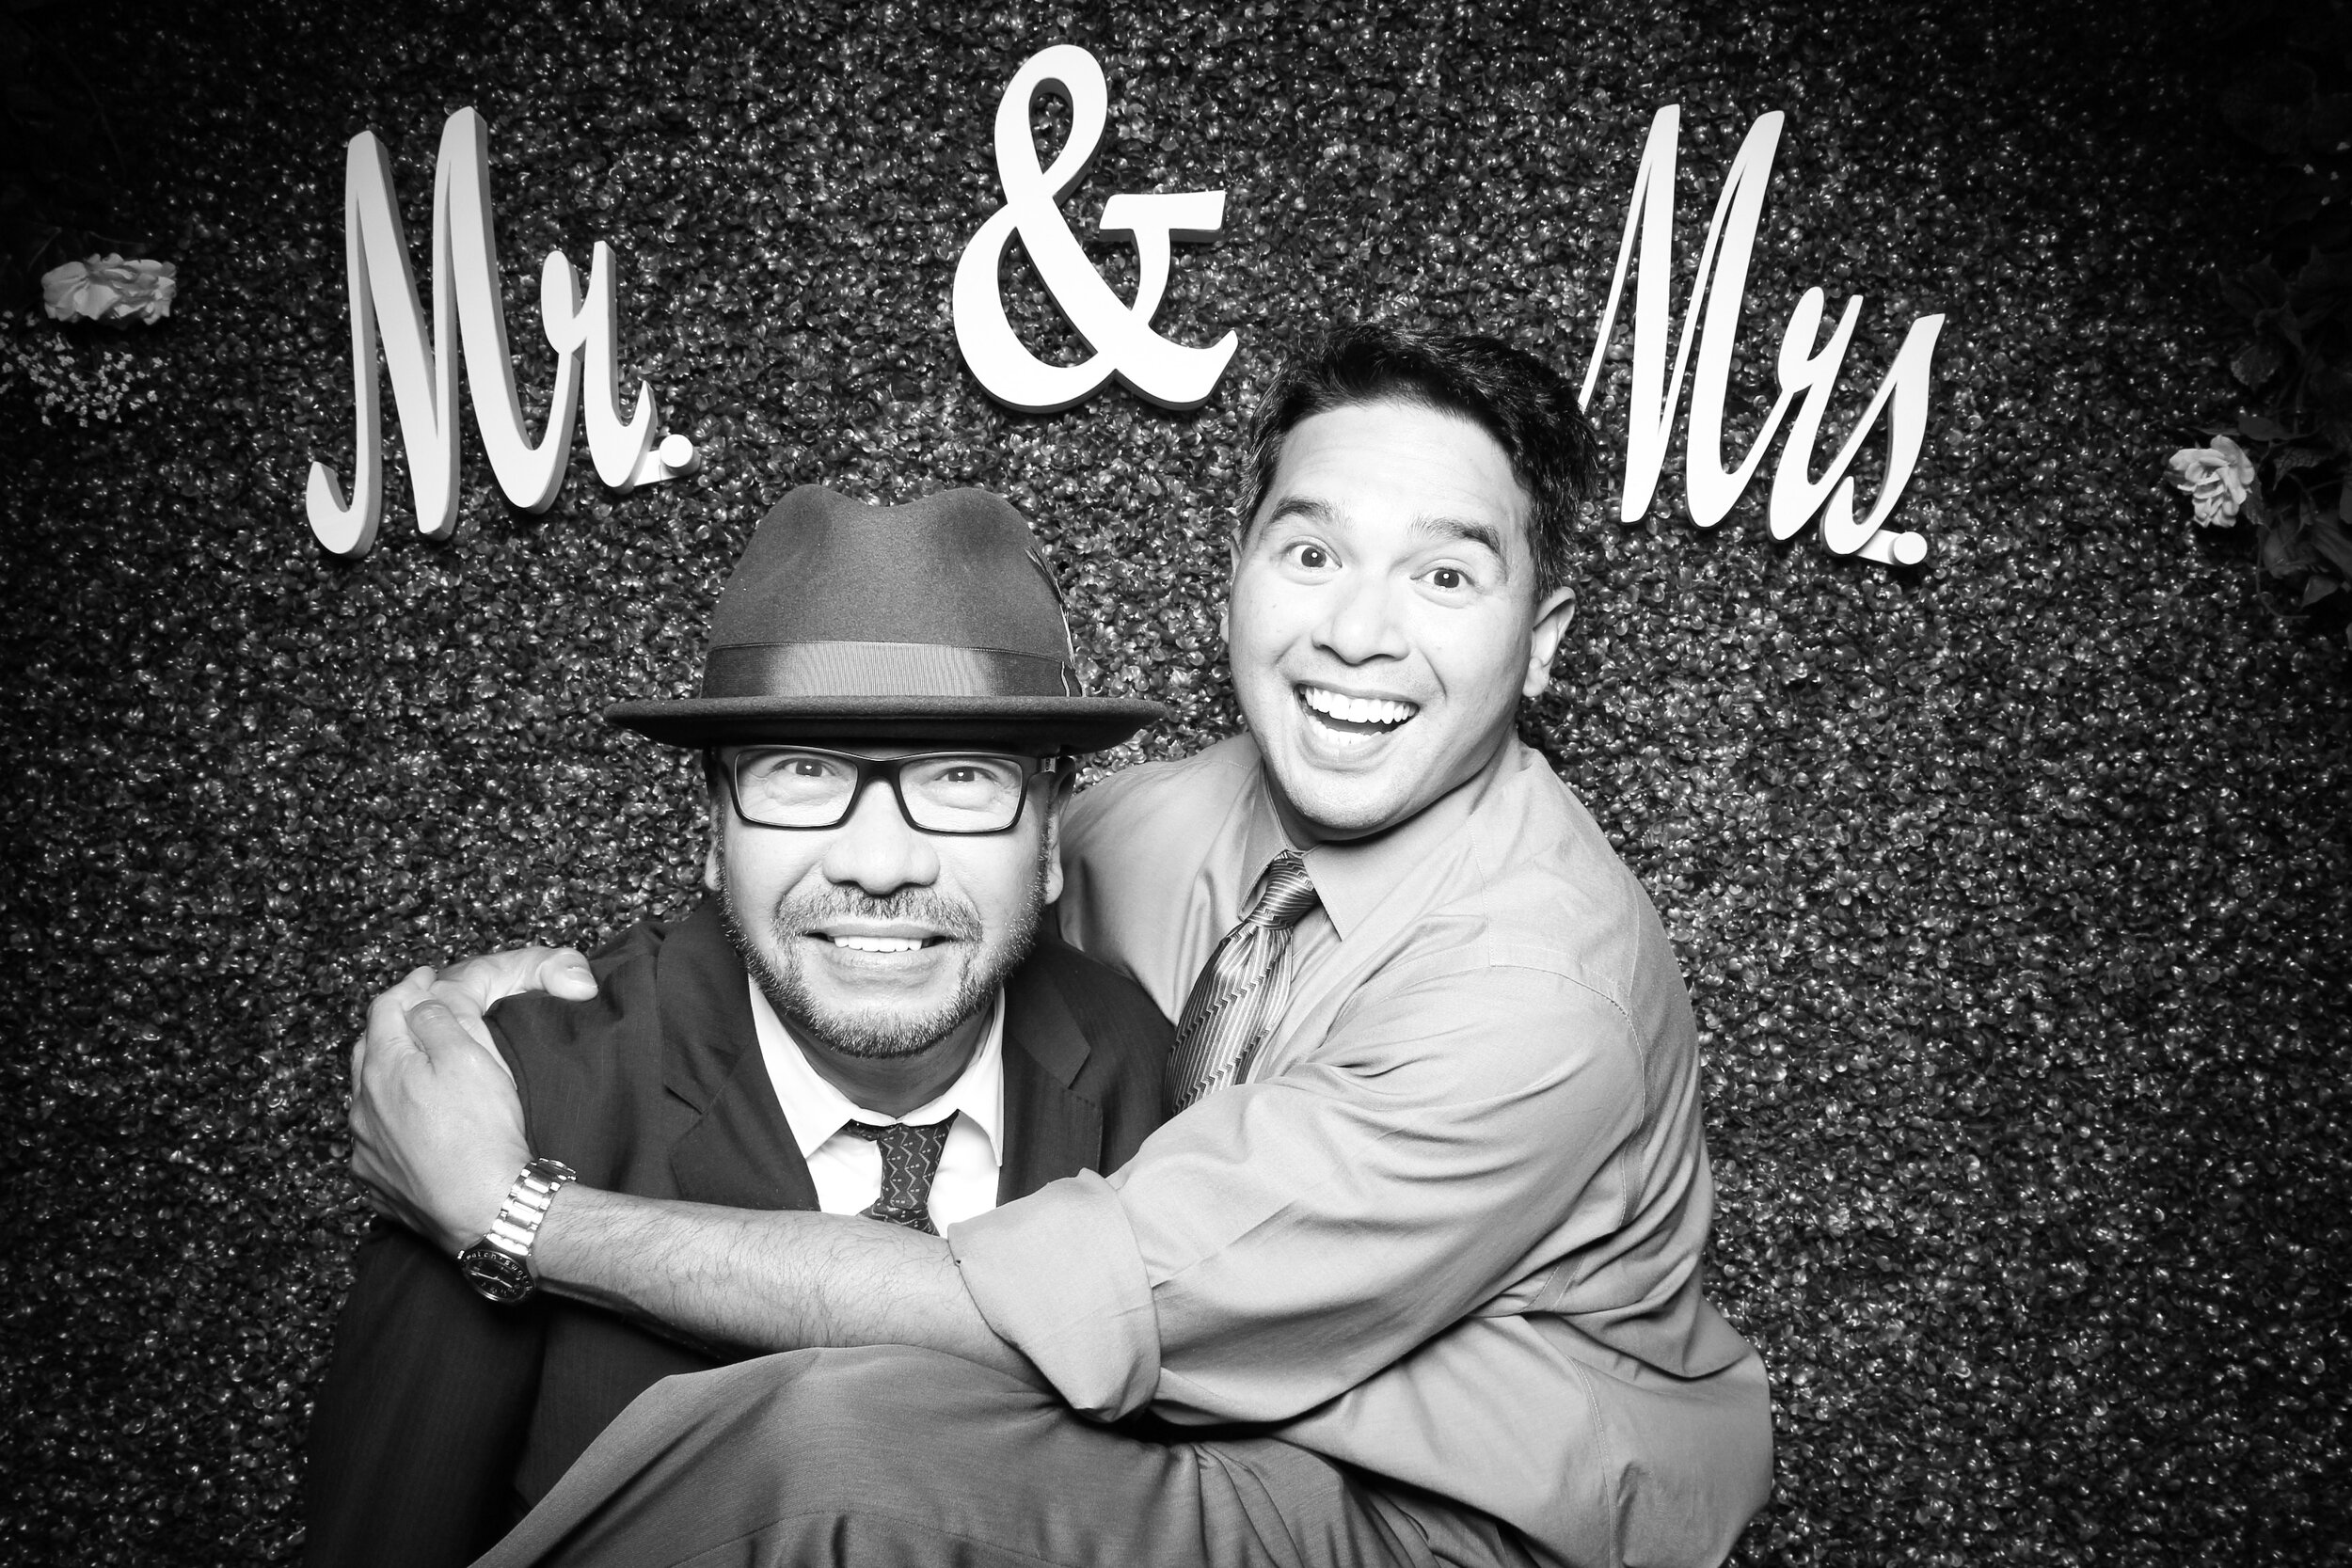 Green_Hedge_Ivy_Wall_Backdrop_Photo_Booth_Rental_Chicago_05.jpg